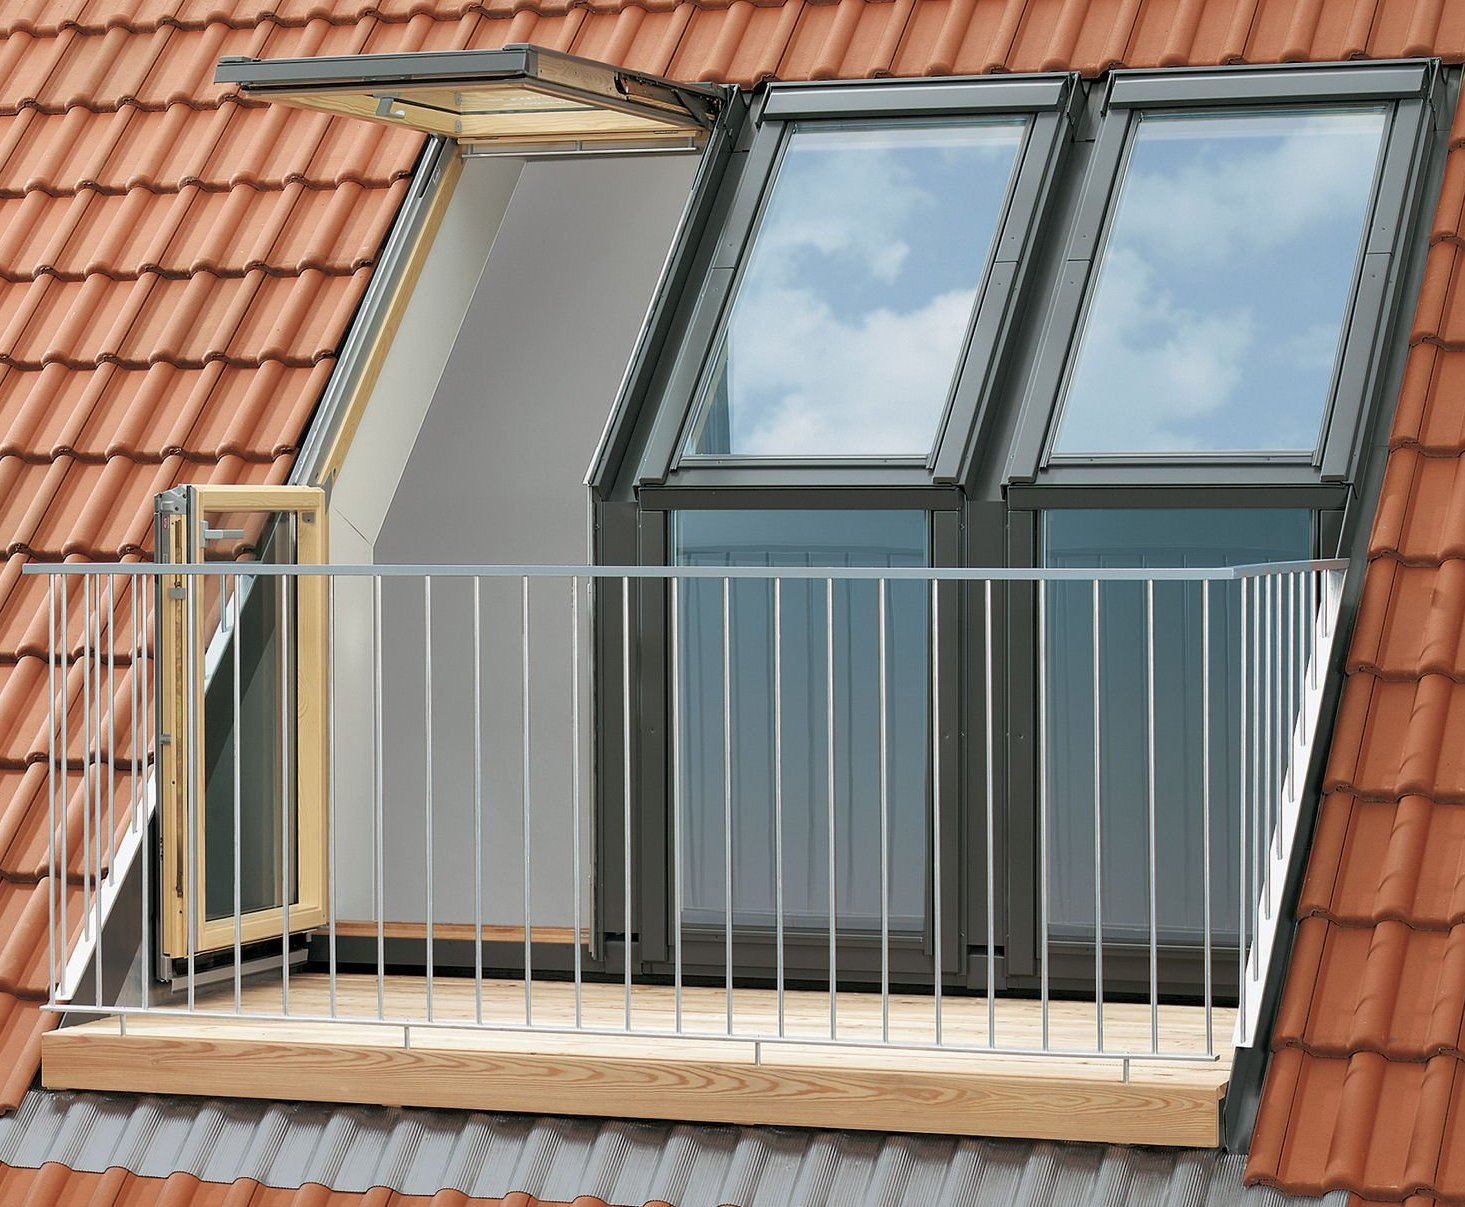 Velux balcony roof window - roof.